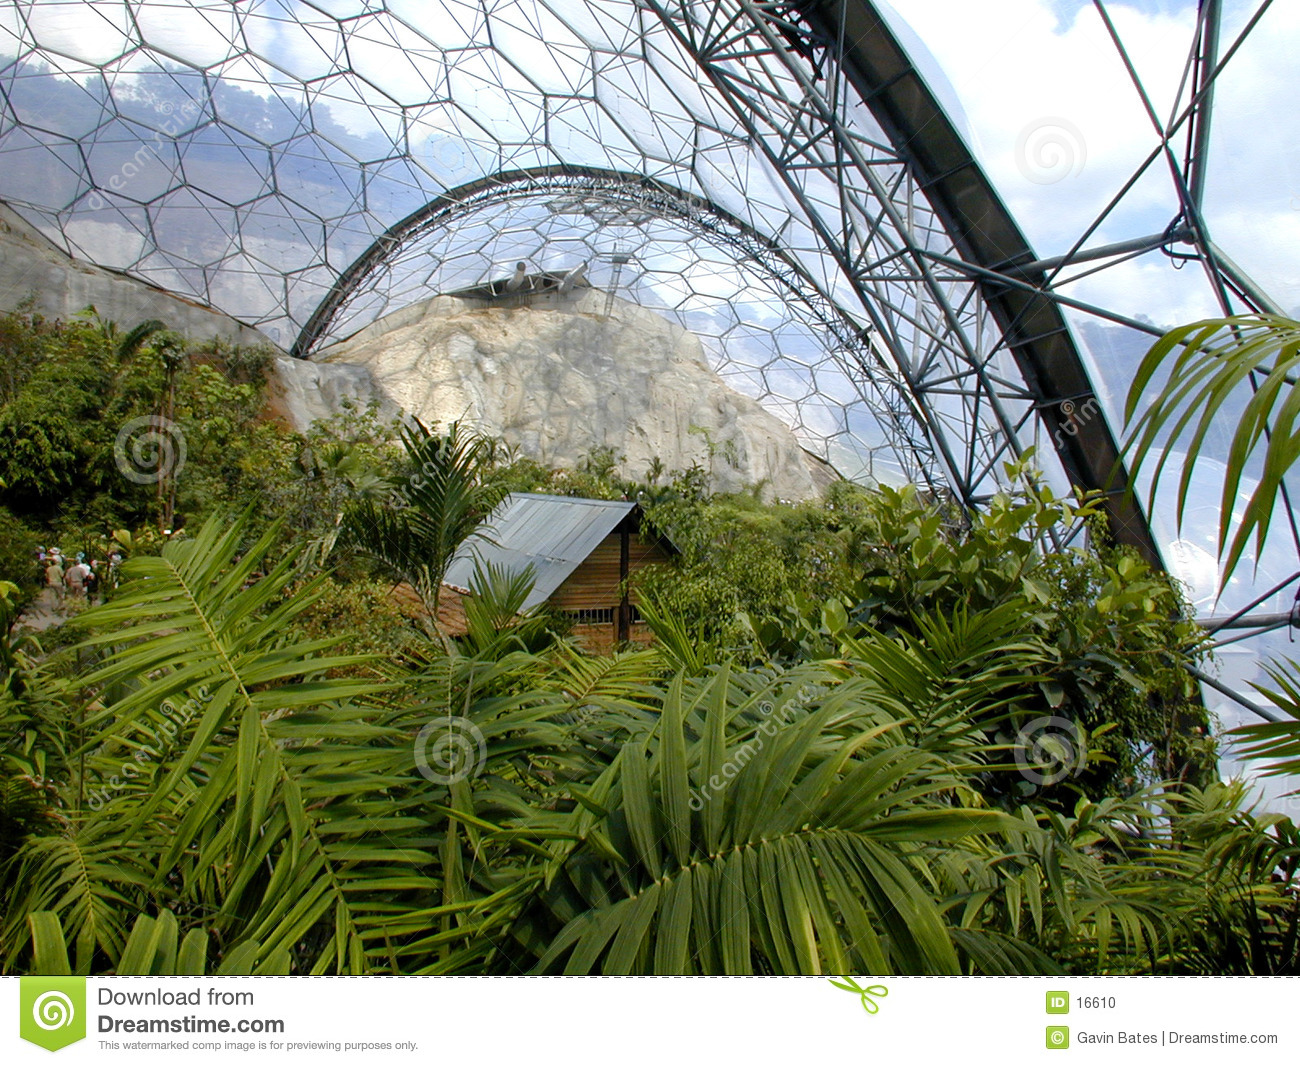 Eden Project - Biome